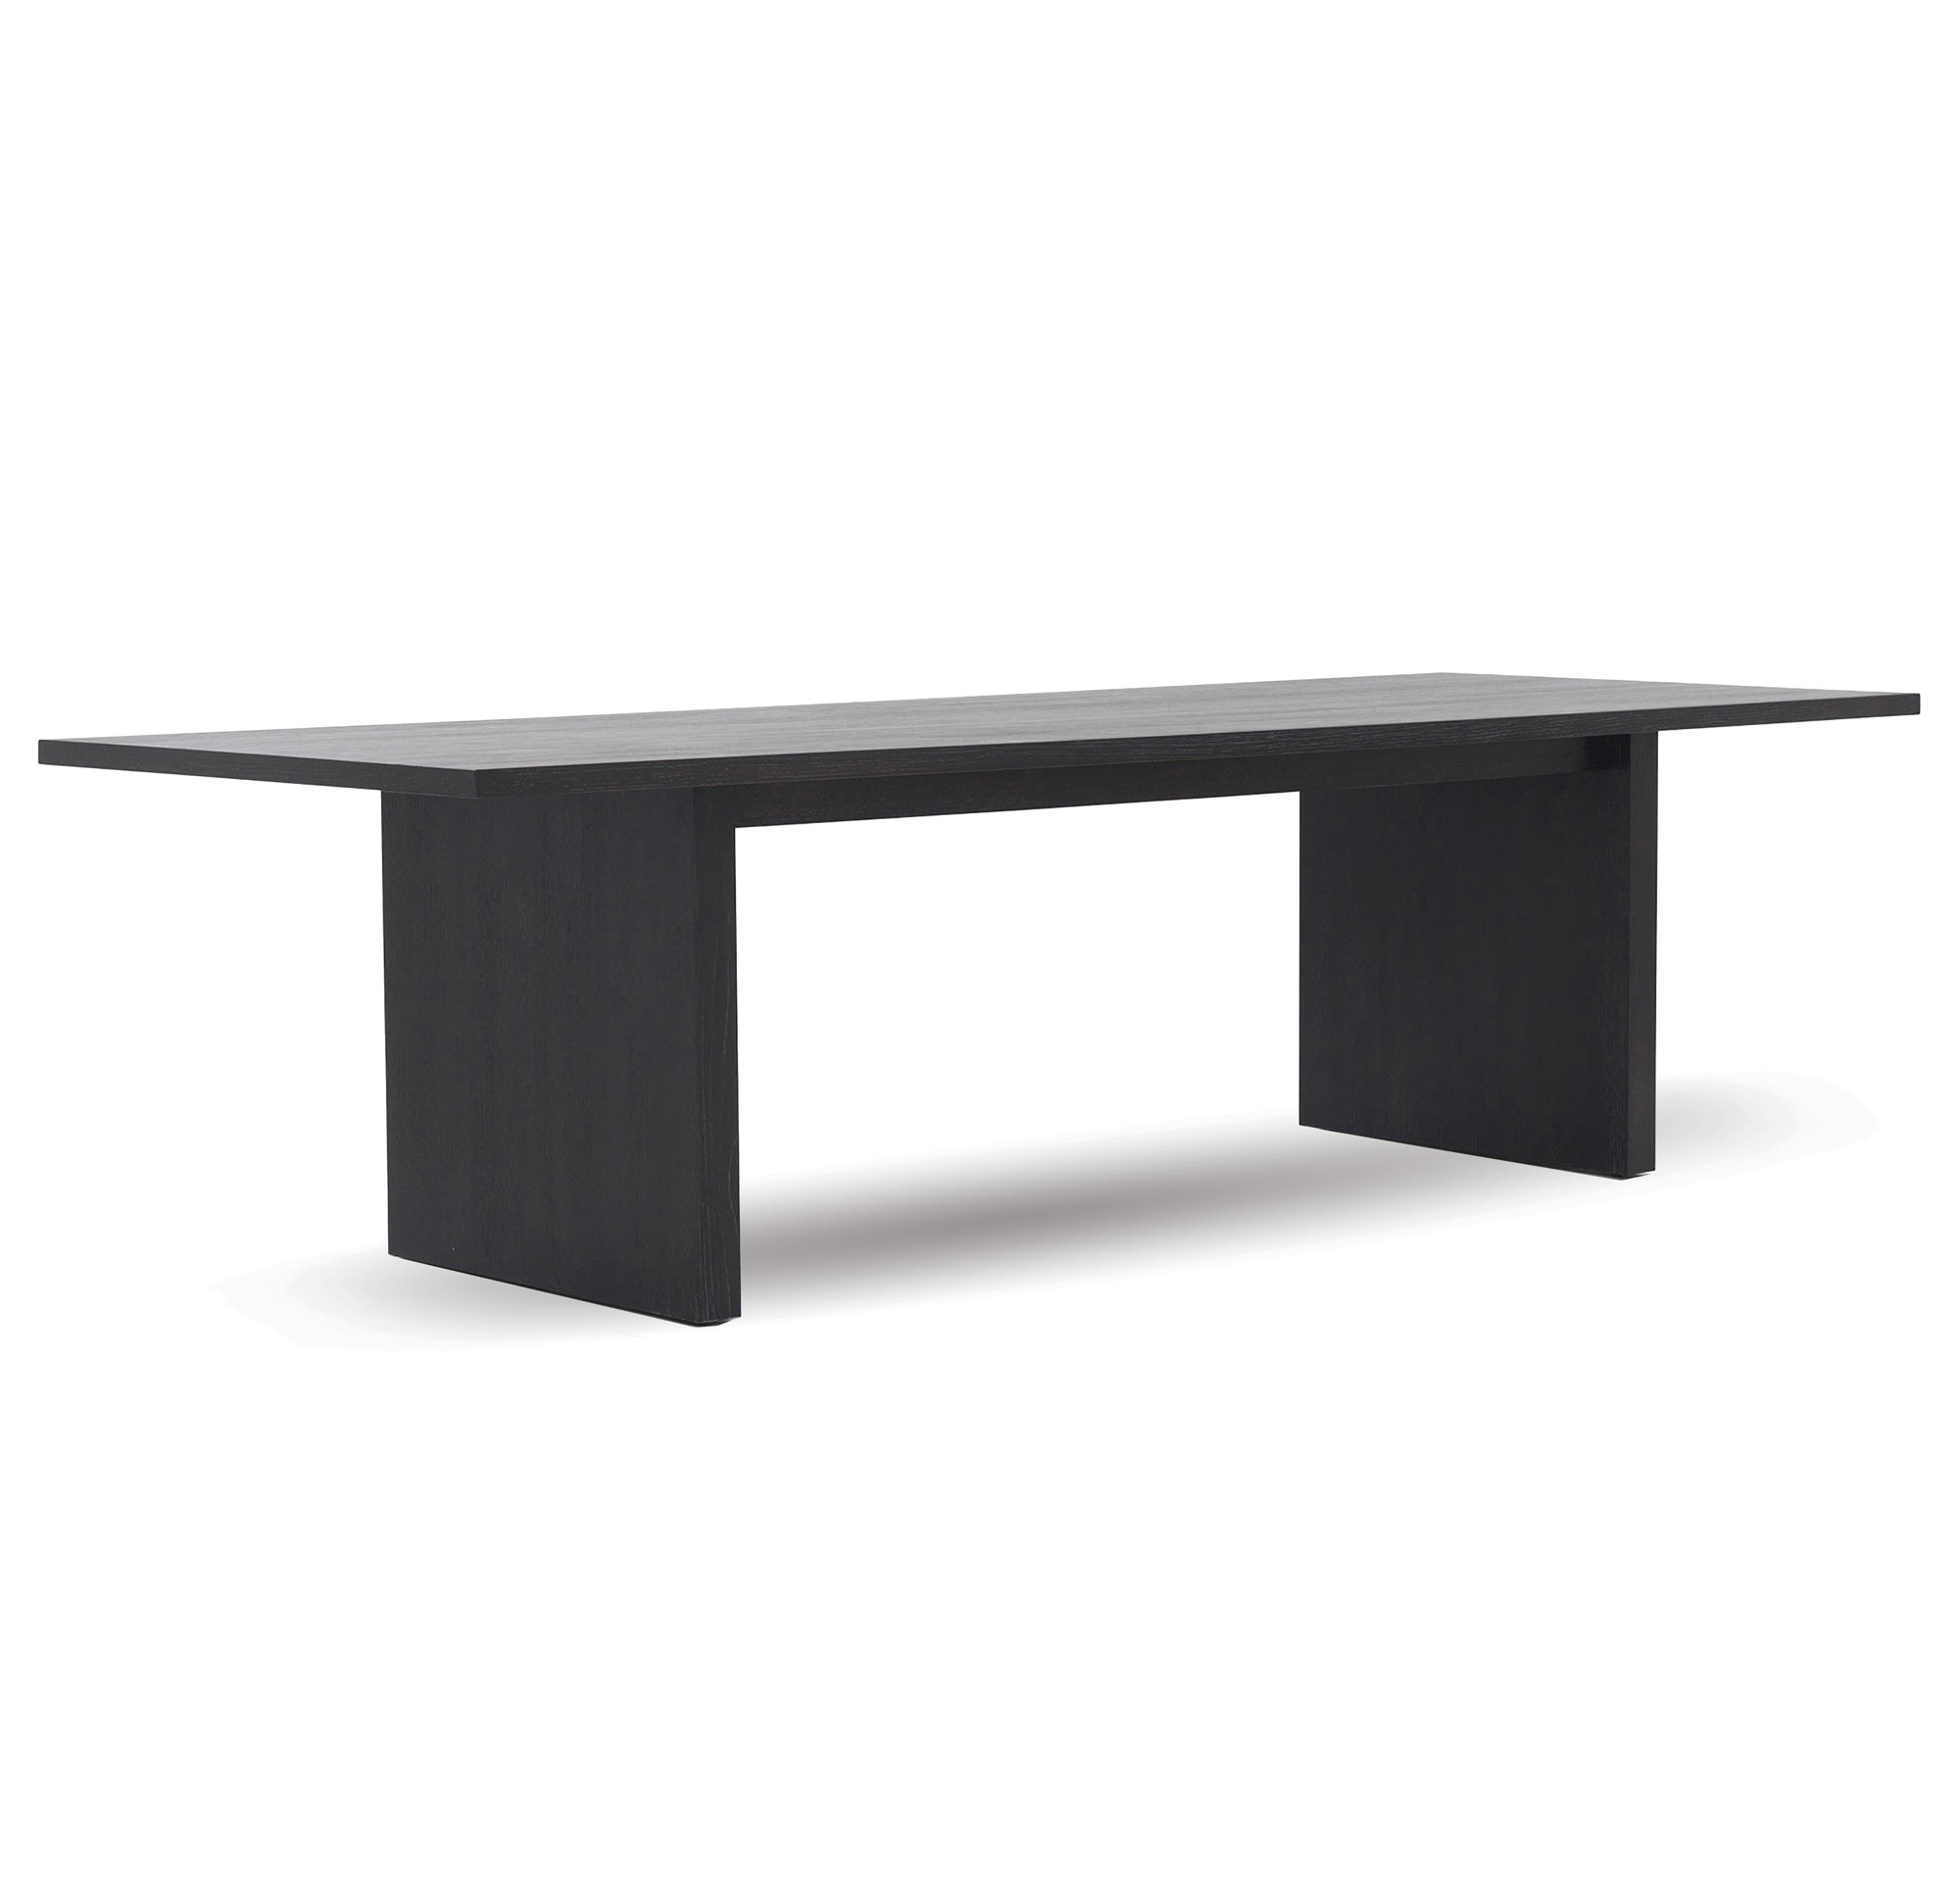 The Forrester table by Mitchell Gold + Bob Williams